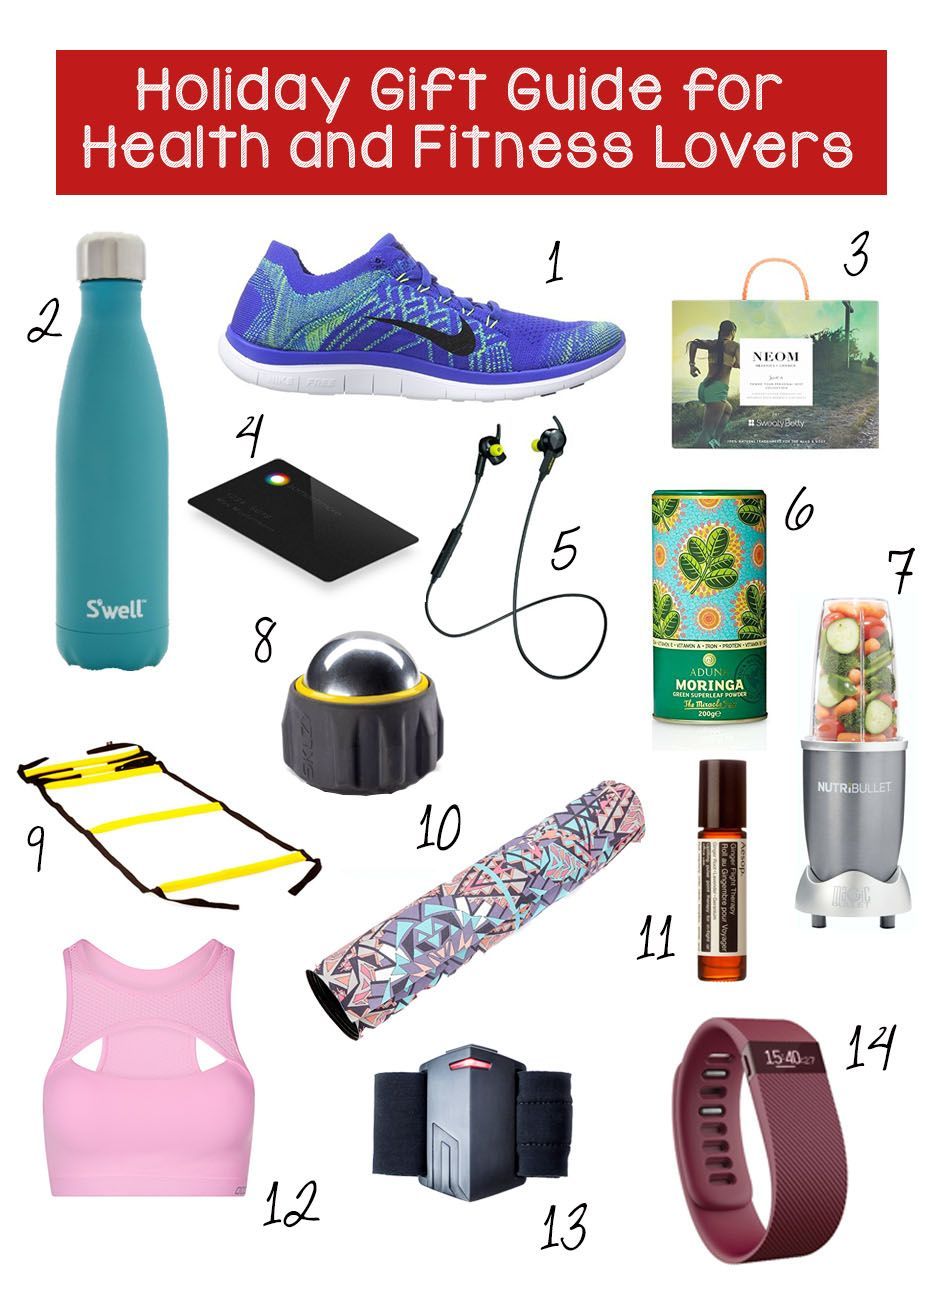 The Ultimate Holiday Gift Guide For Health And Fitness Lovers – Train Hard Live Clean